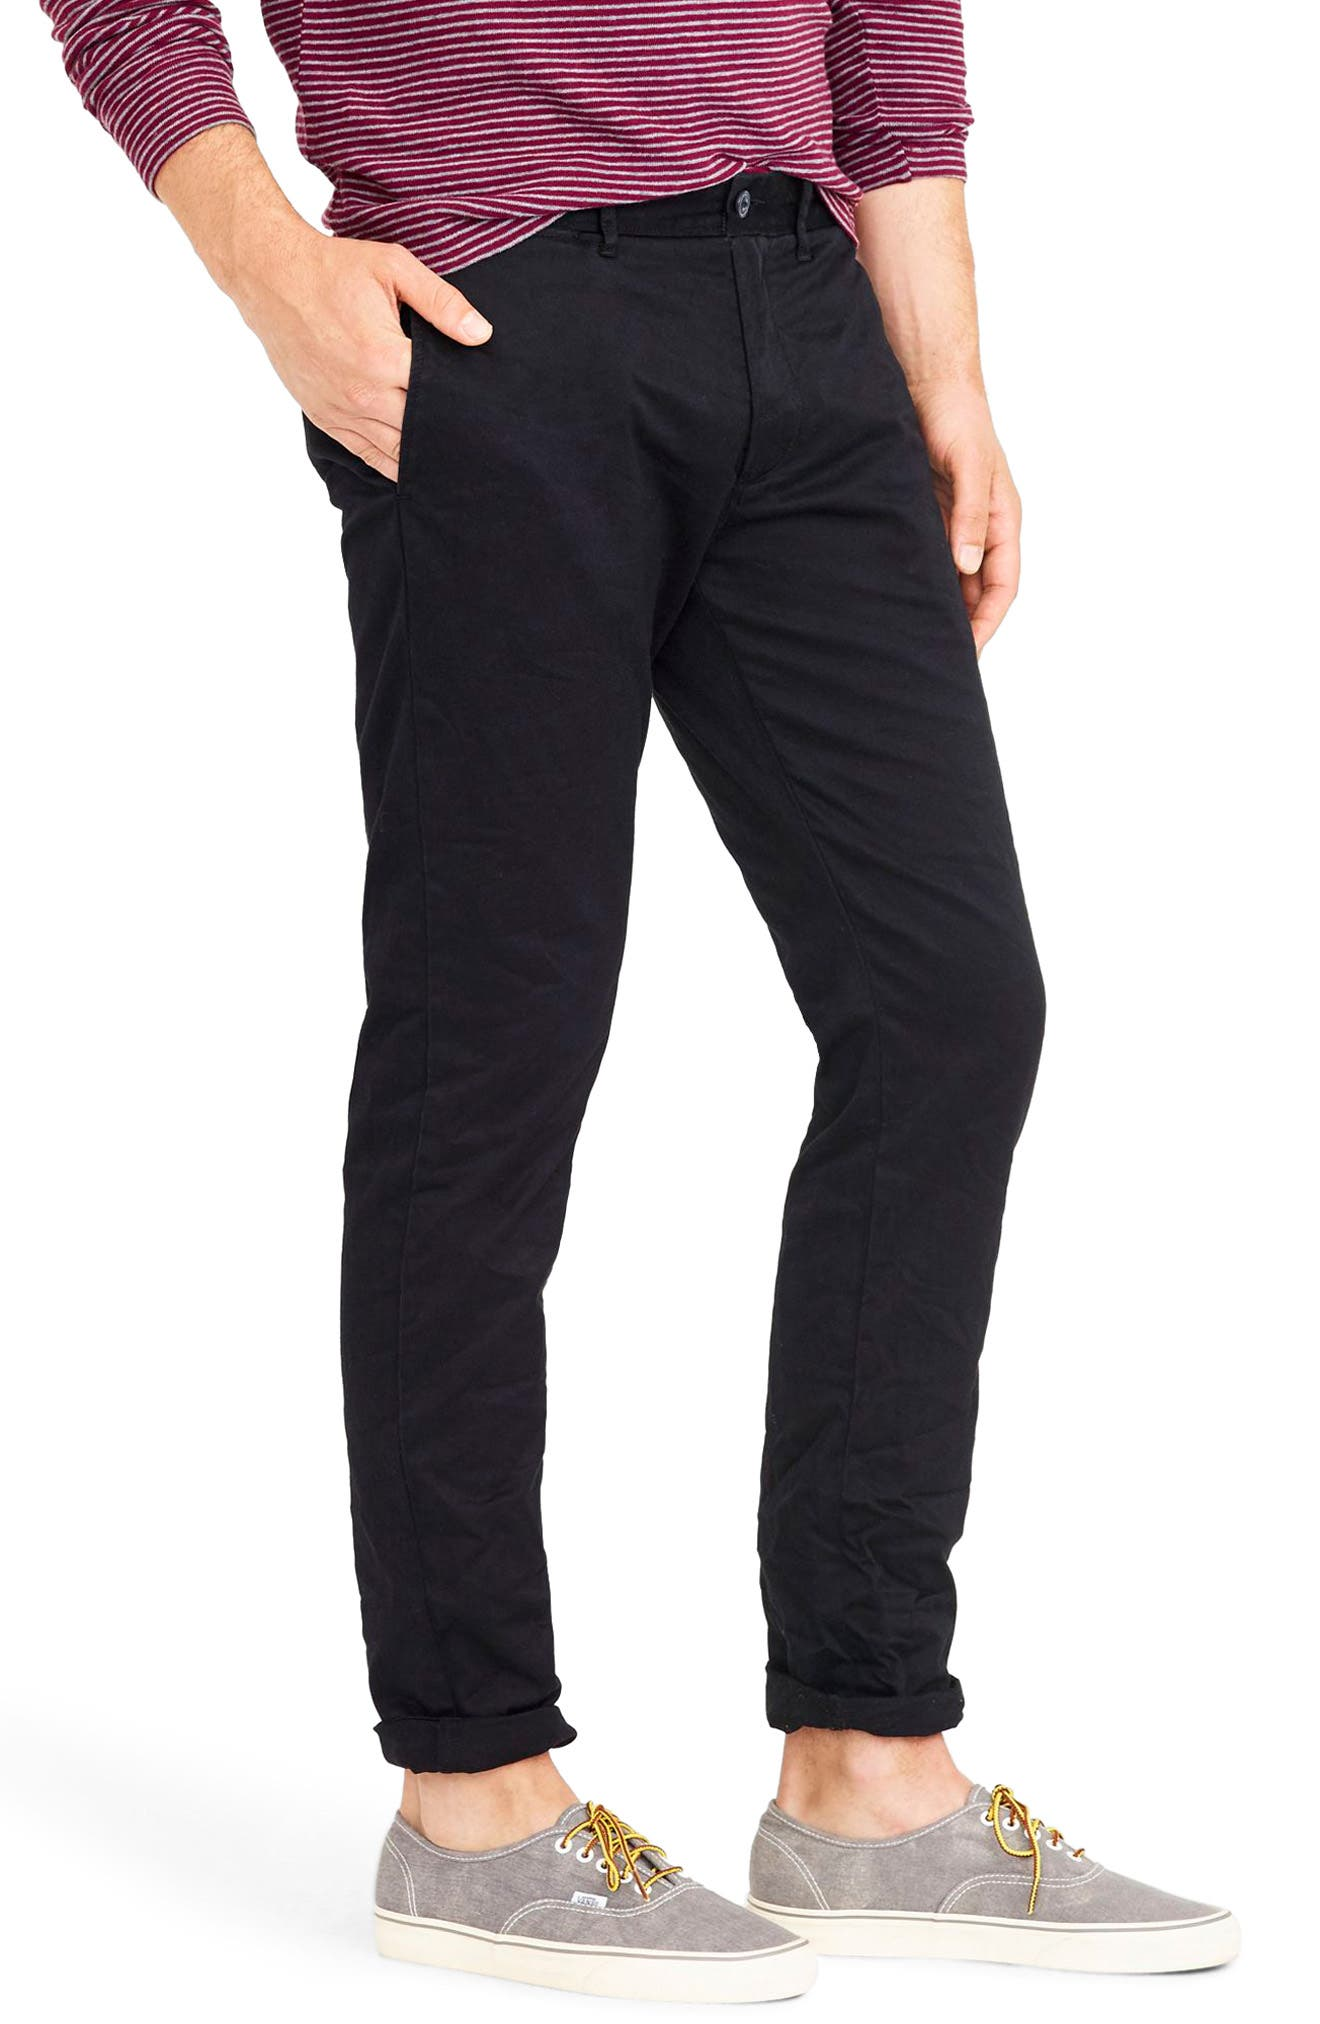 484 Slim Fit Stretch Chino Pants,                             Alternate thumbnail 24, color,